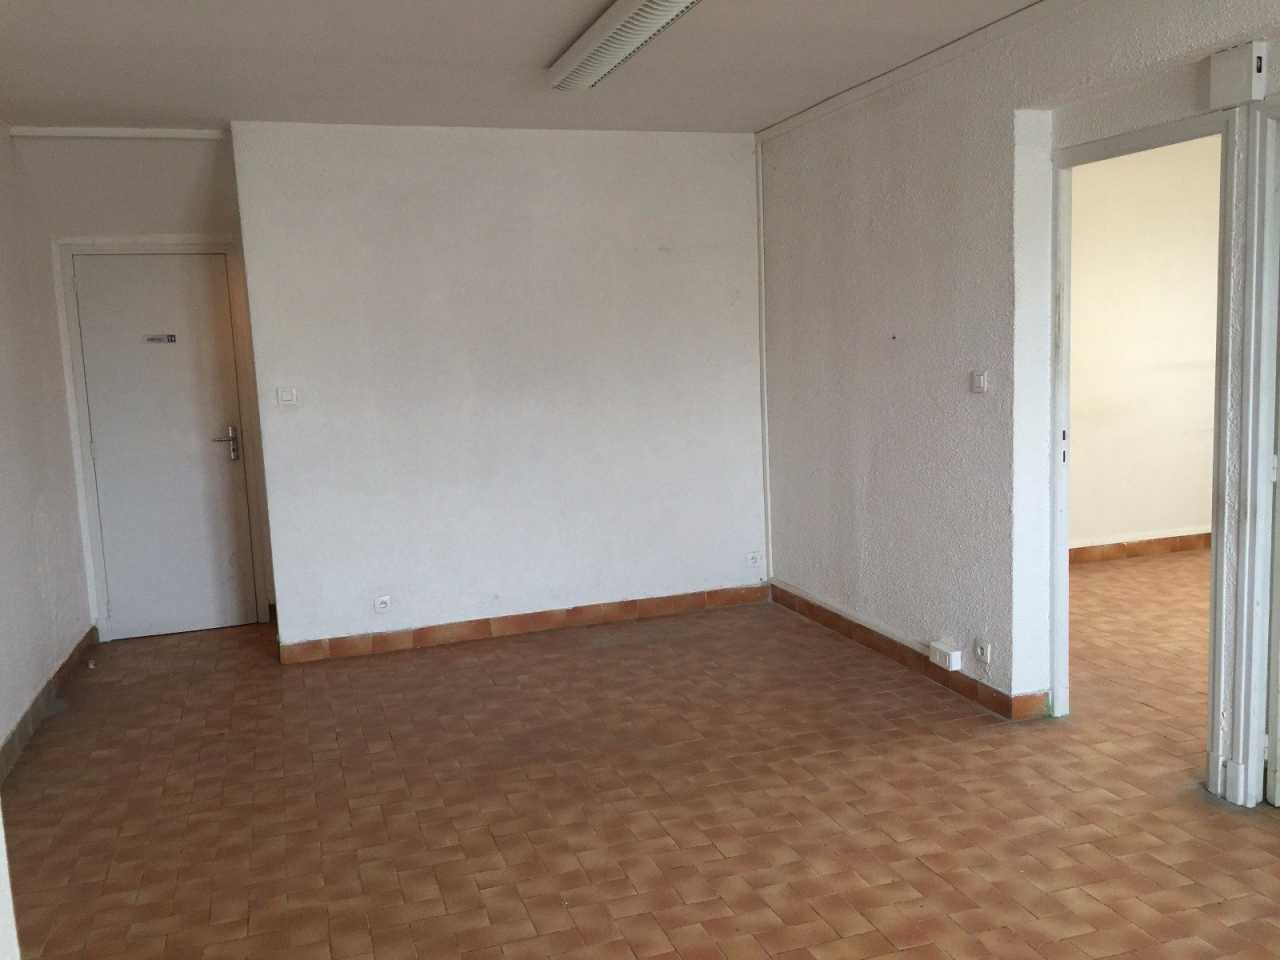 Apartment CARCASSONNE | 441 € / month